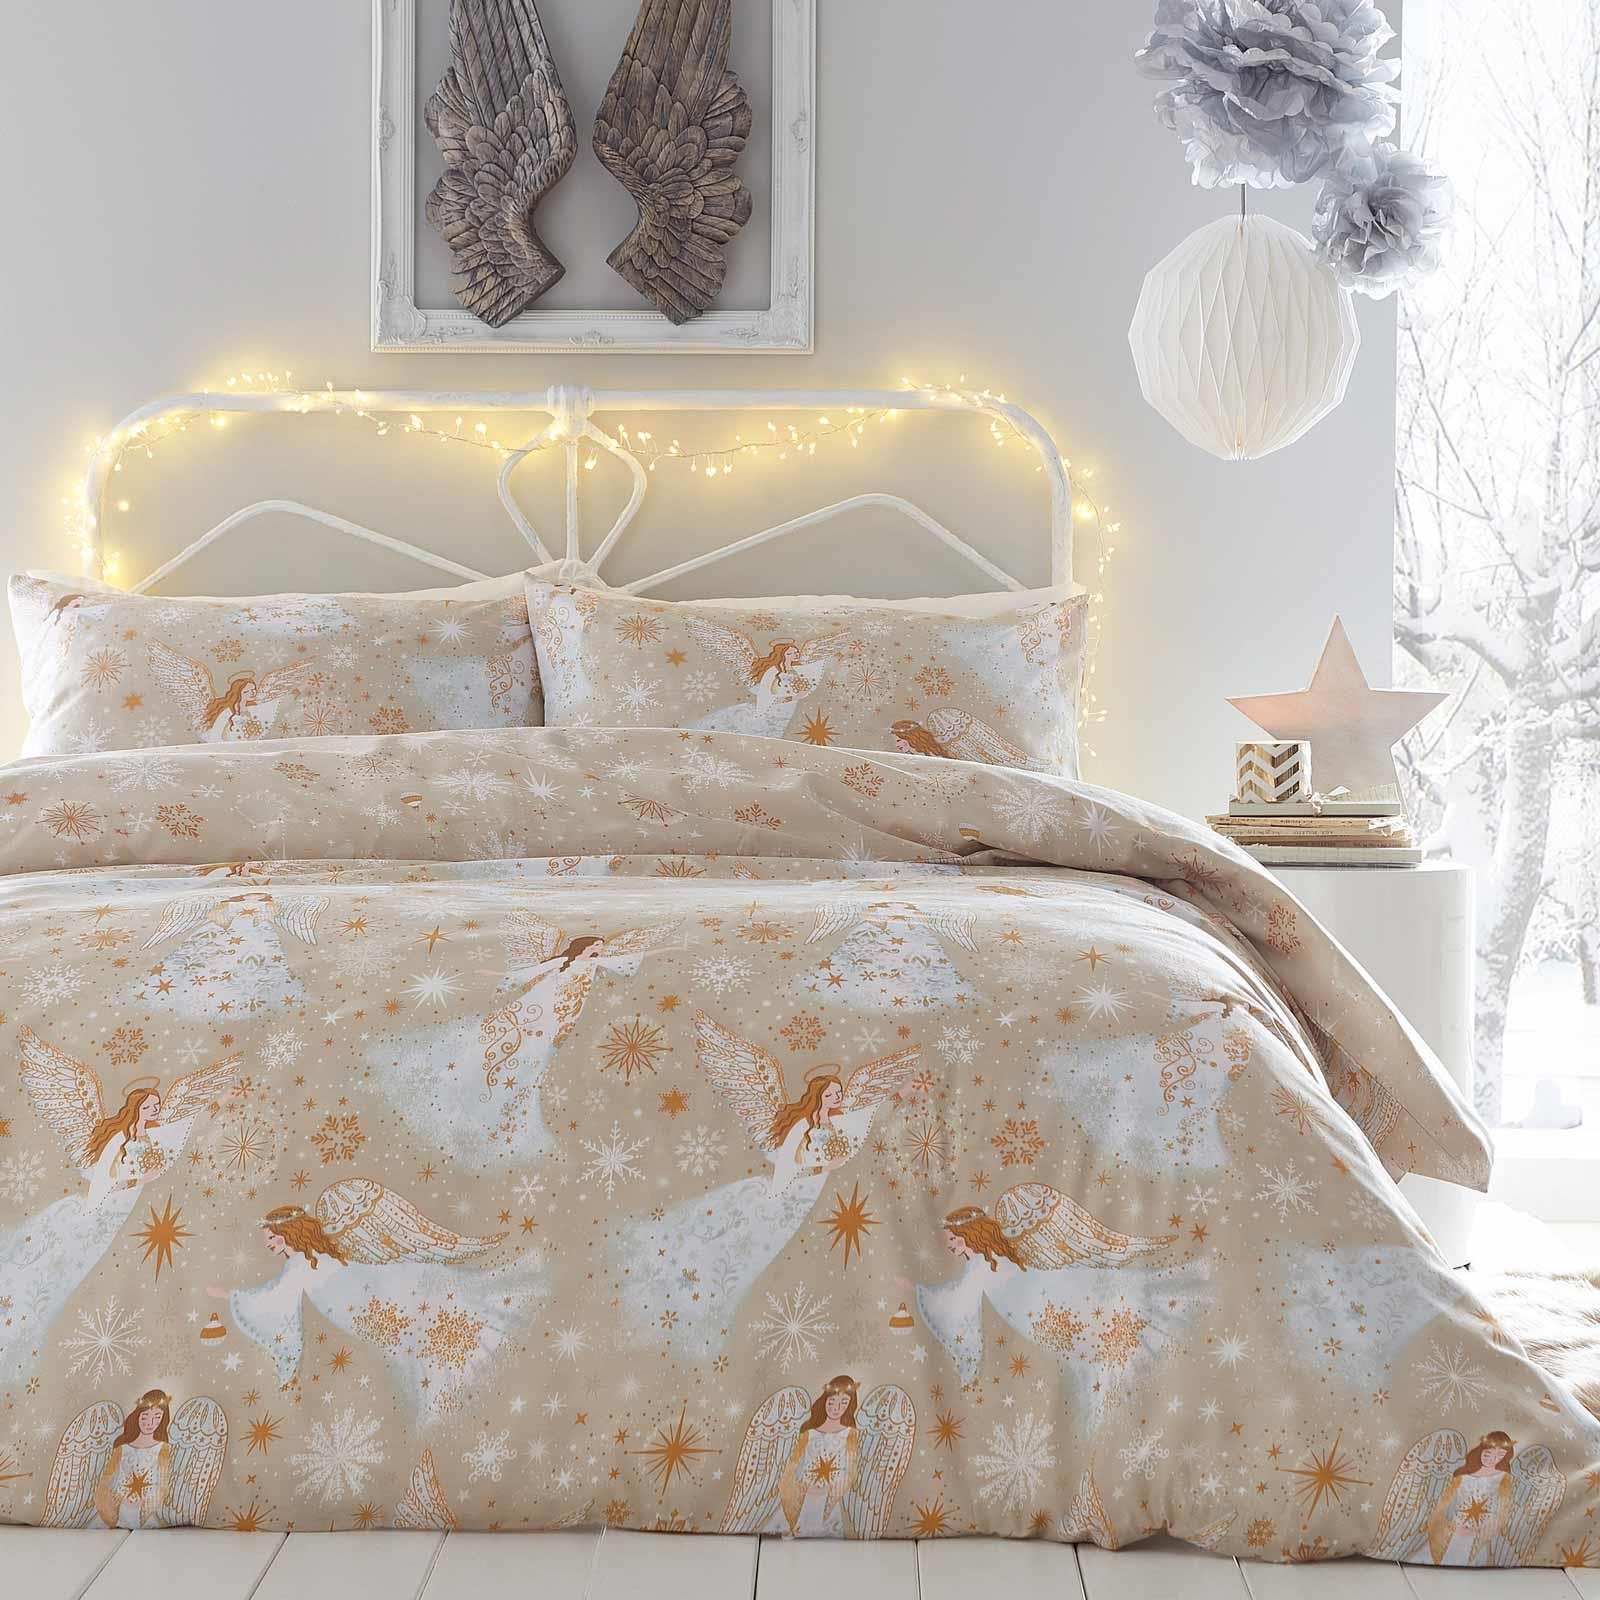 Gold Duvet Covers Christmas Angels Snowflake Stars Quilt Cover Bedding Sets Ebay